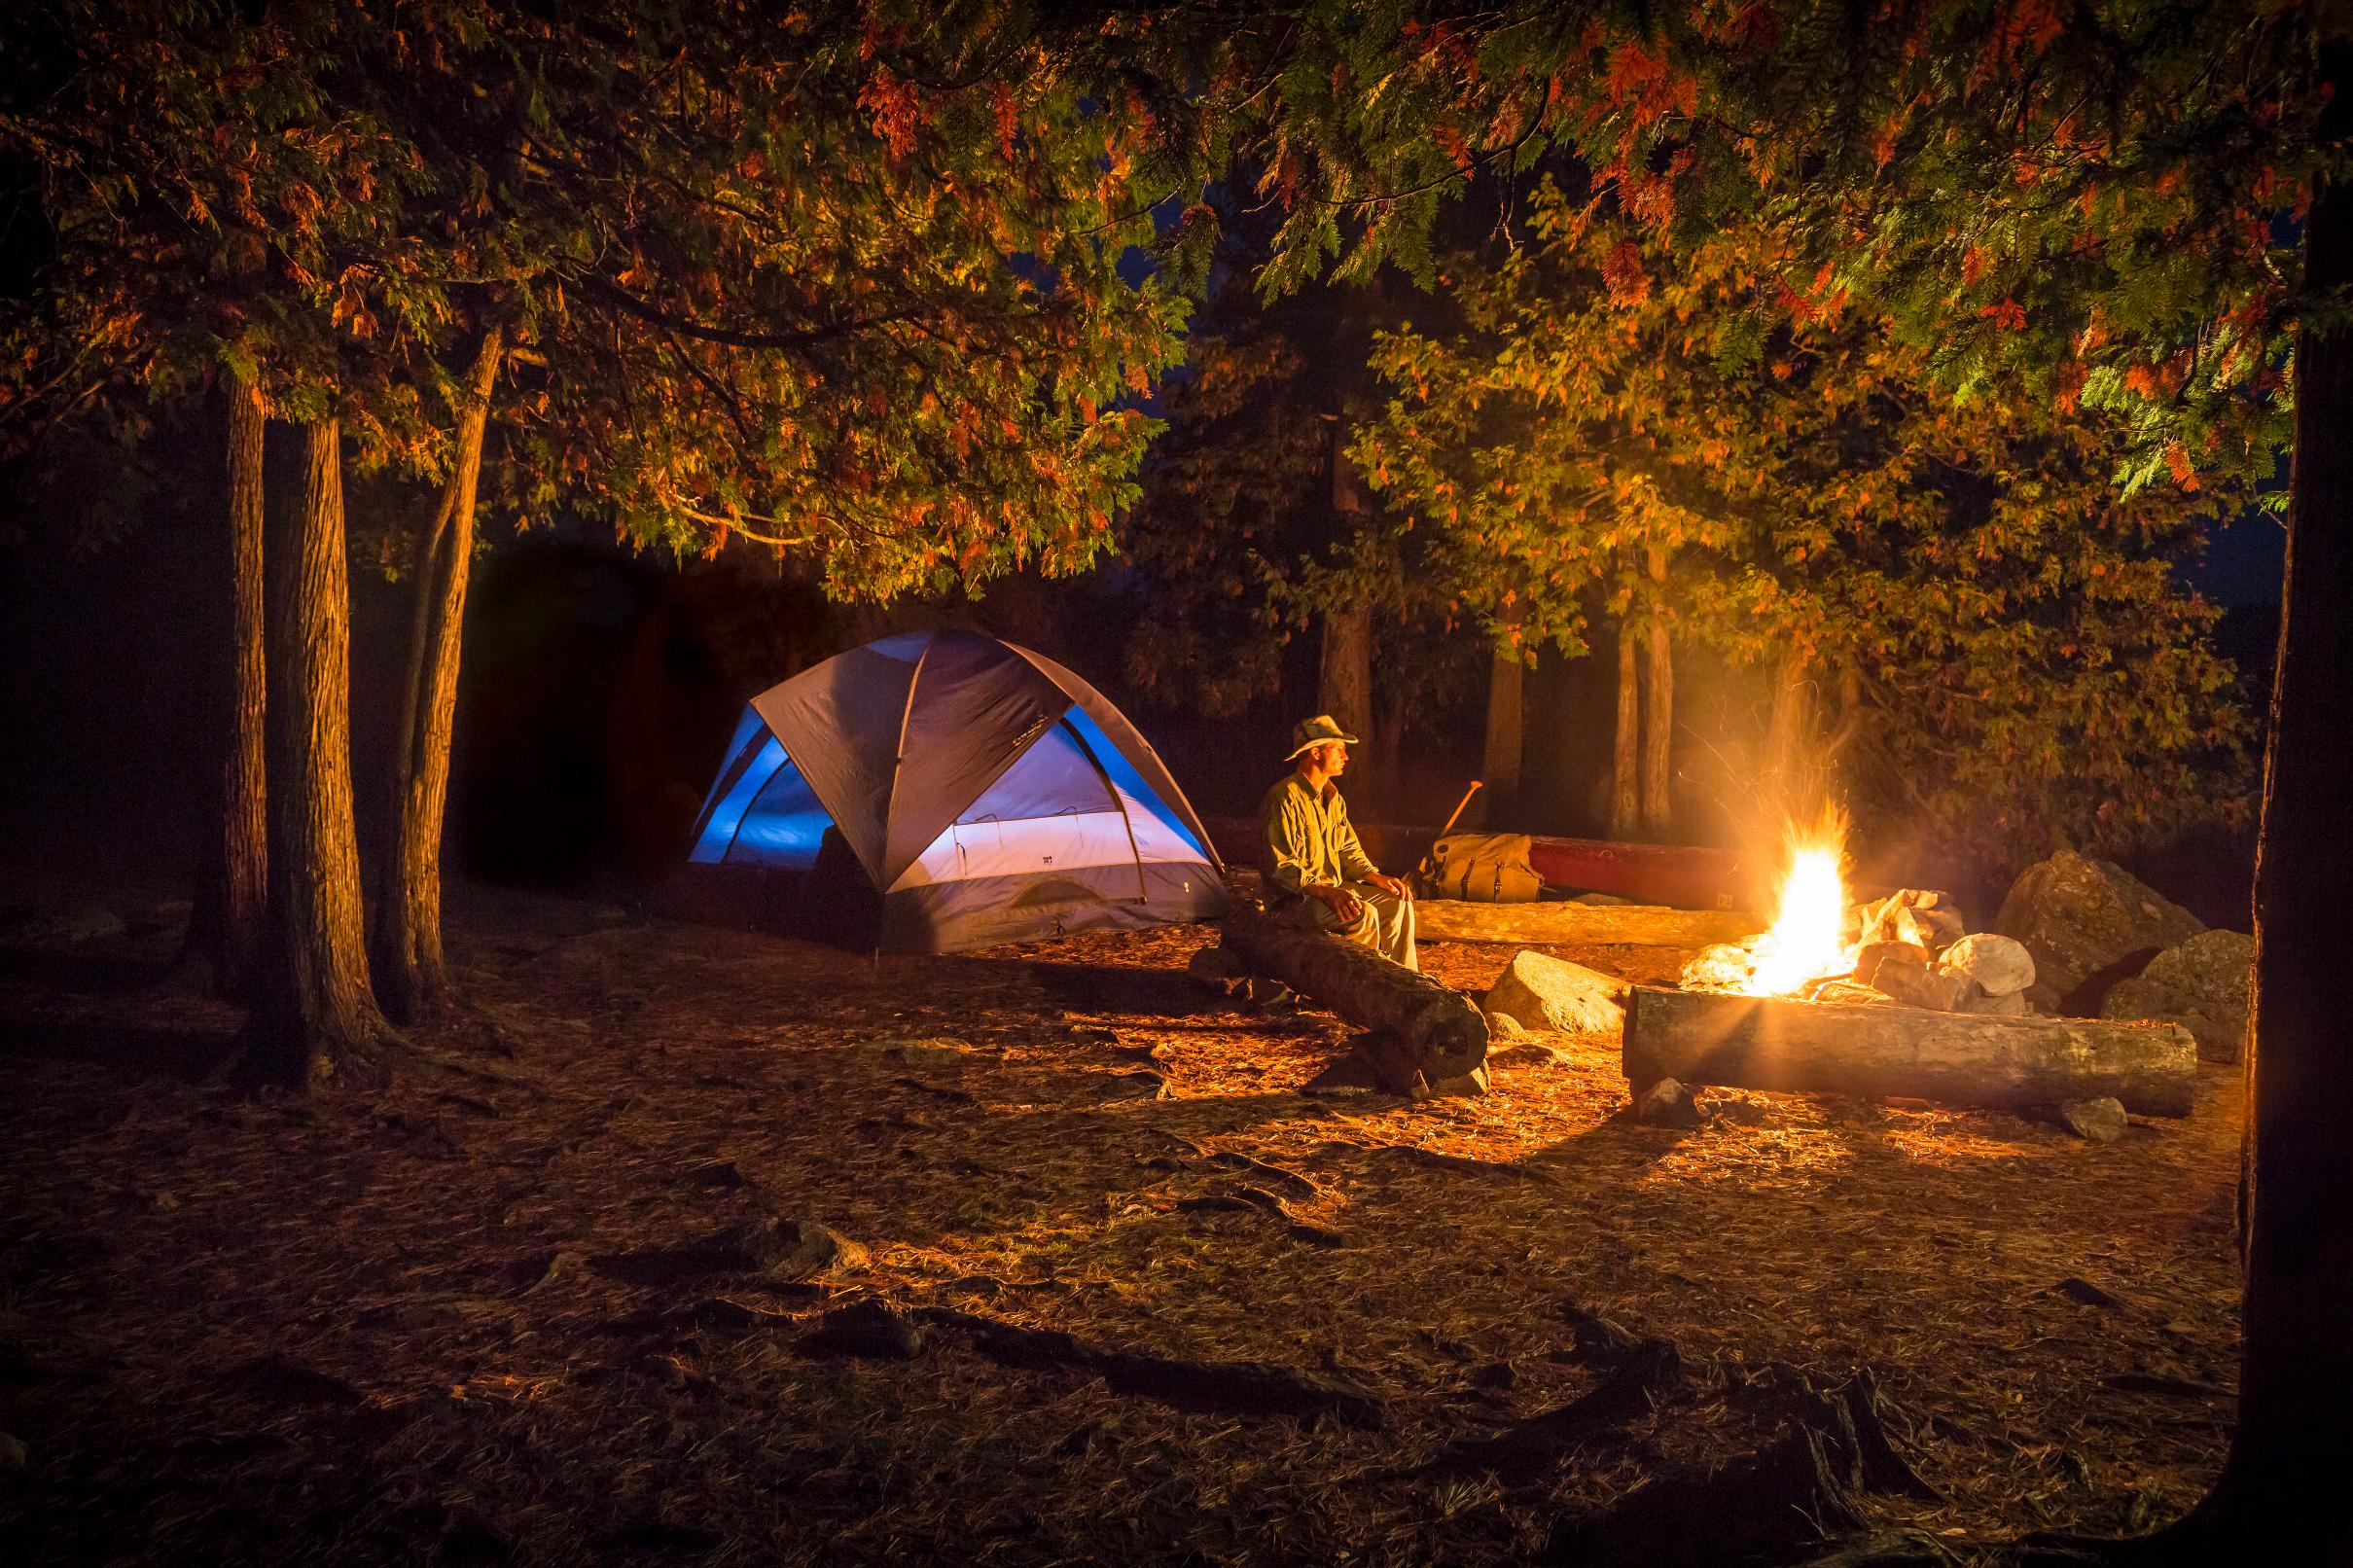 Boundary Waters Quetico Photo and Trip Report Contest